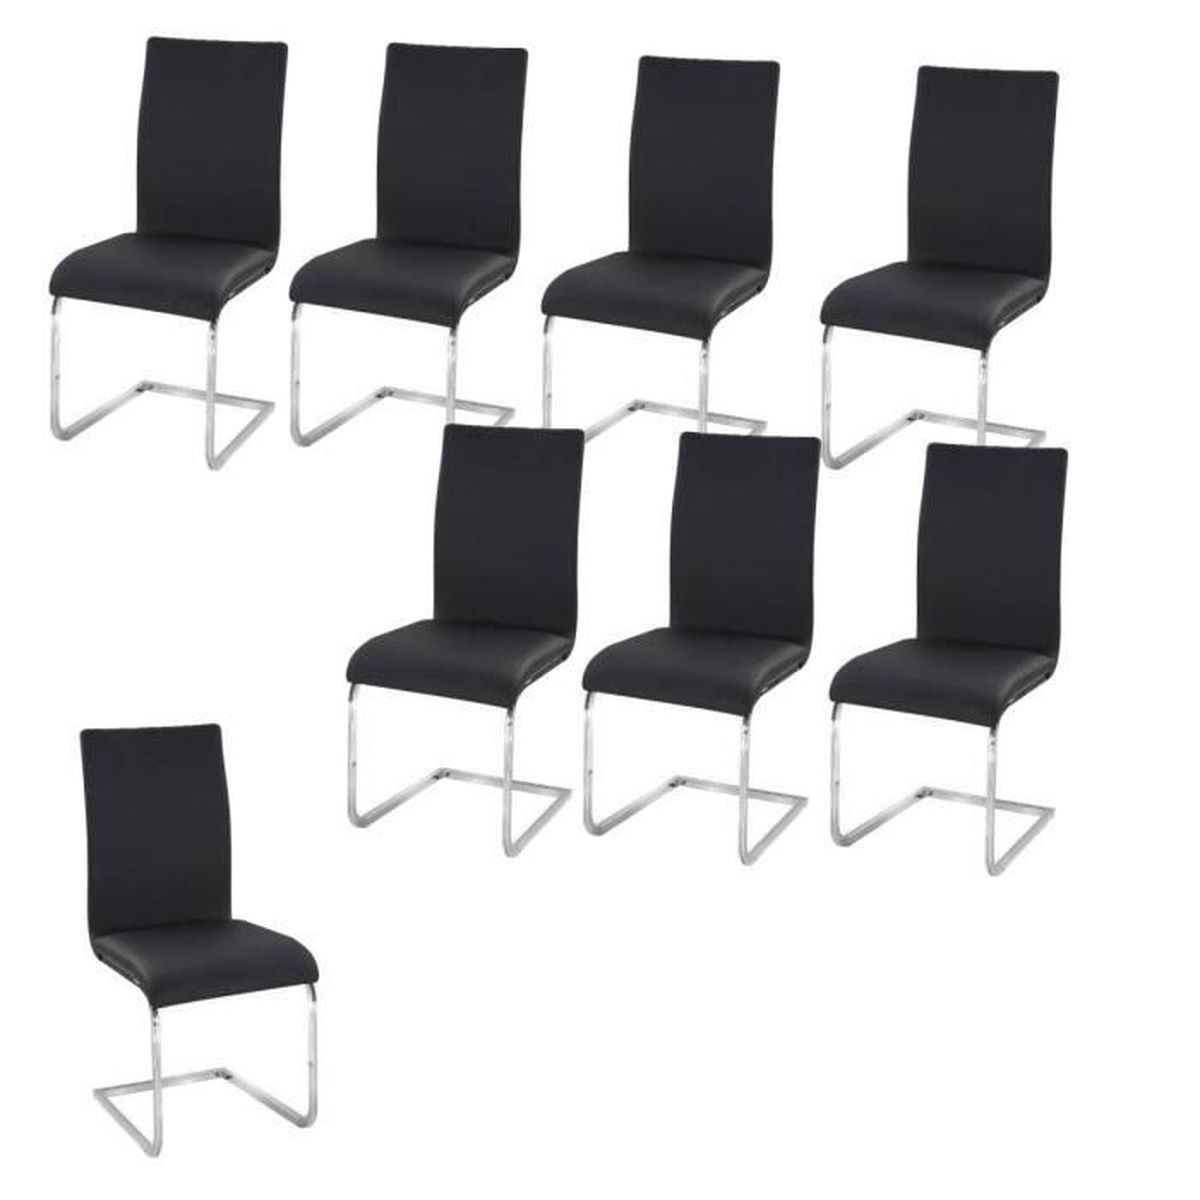 lea lot de 8 chaises de salle manger noires achat vente chaise cadeaux de no l cdiscount. Black Bedroom Furniture Sets. Home Design Ideas